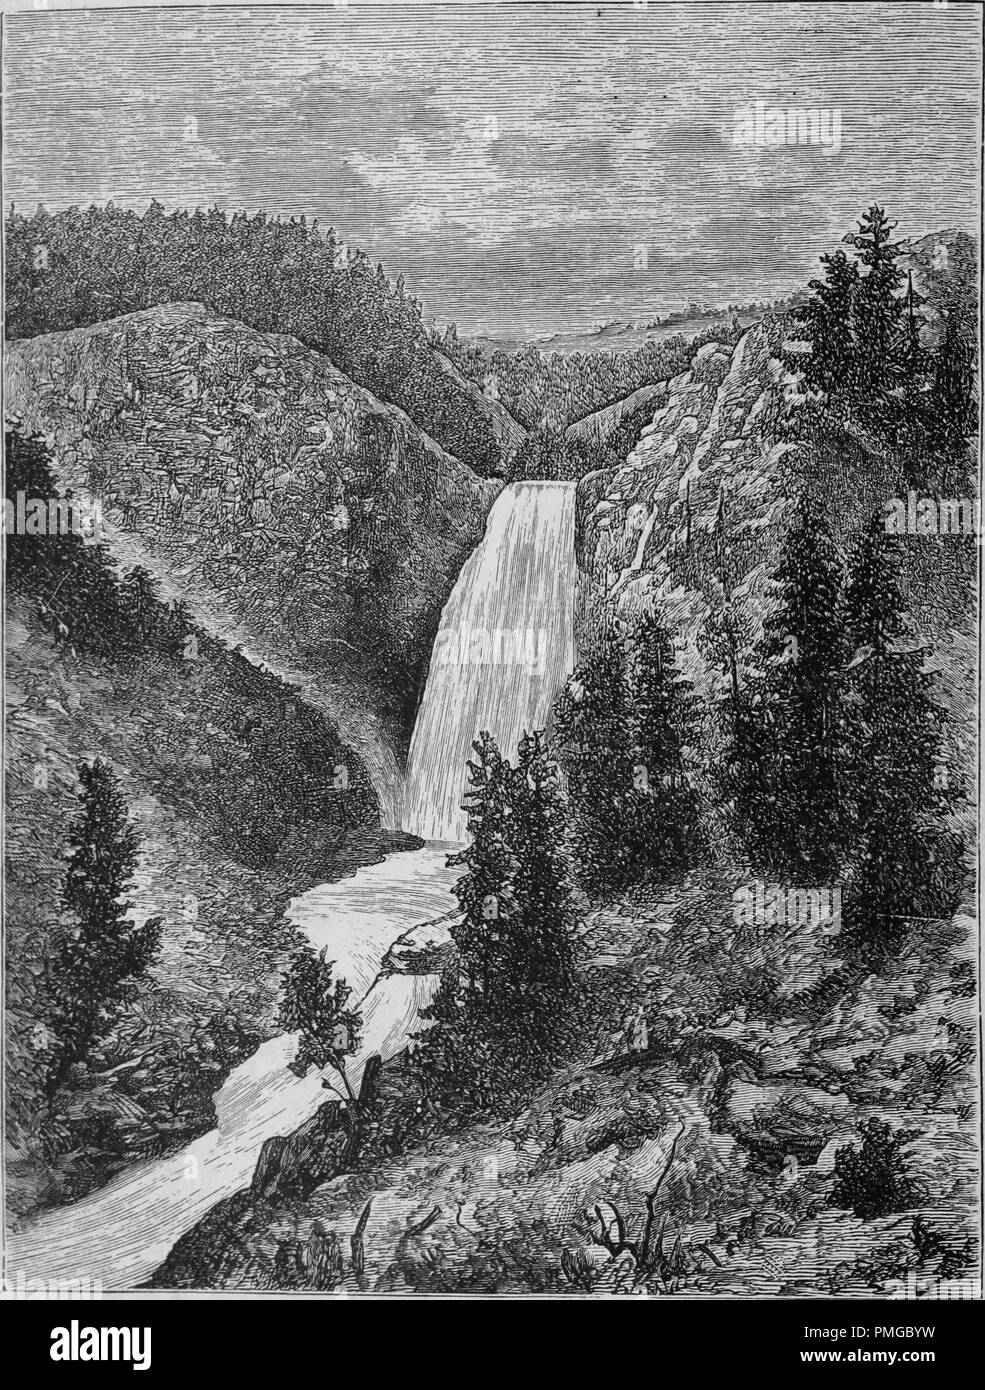 Engraving of the Yellowstone Lower Falls in Wyoming, from the book 'The Pacific tourist', 1877. Courtesy Internet Archive. () - Stock Image